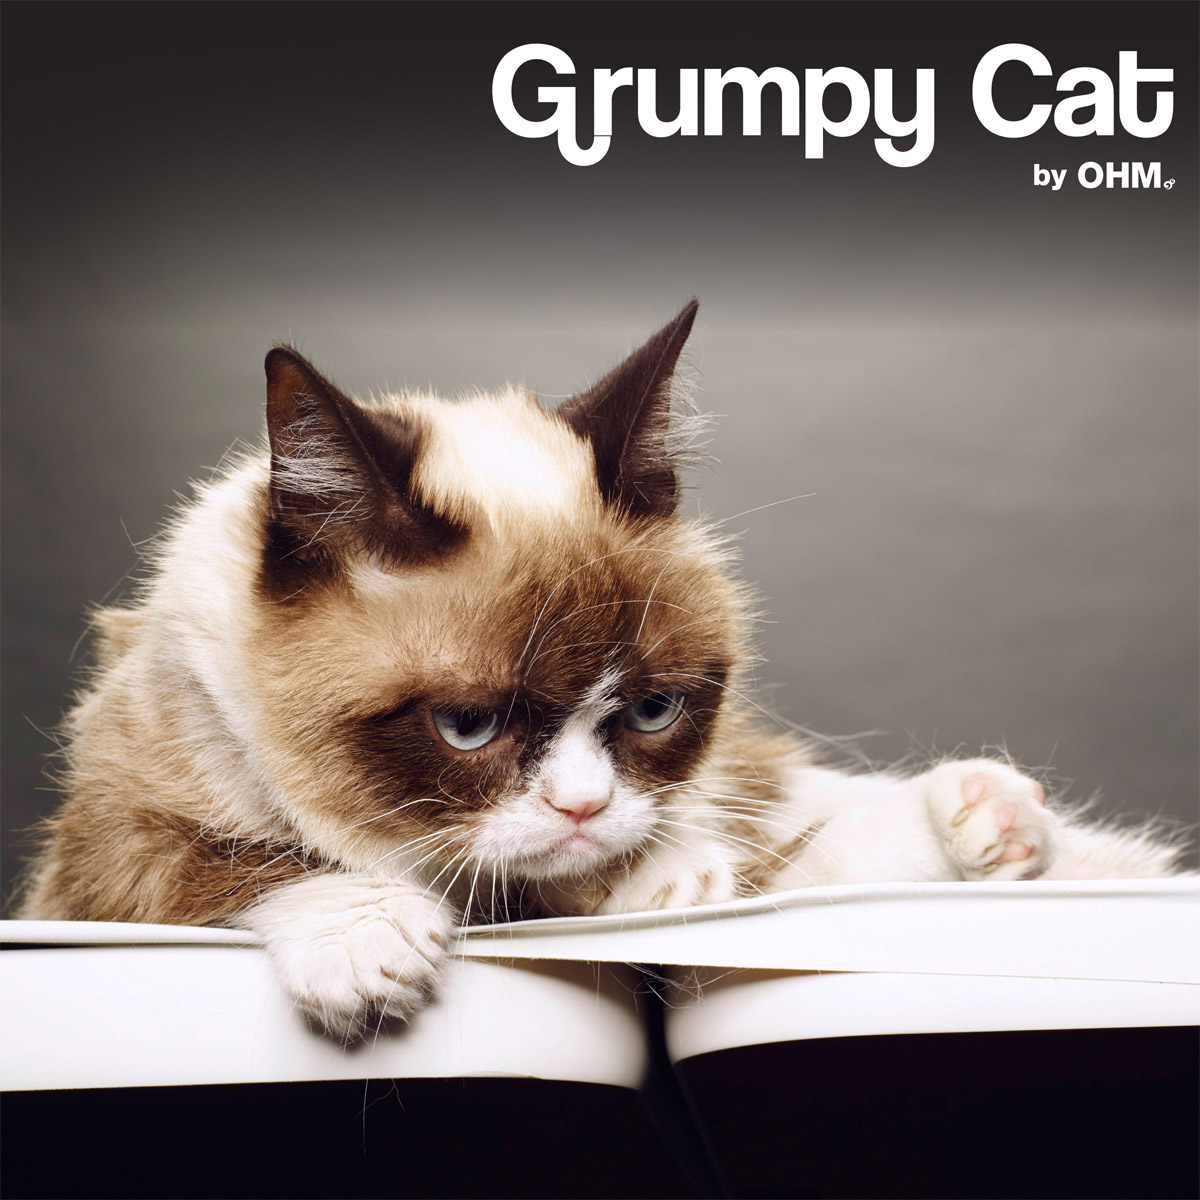 ohm-collections-grumpy-cat